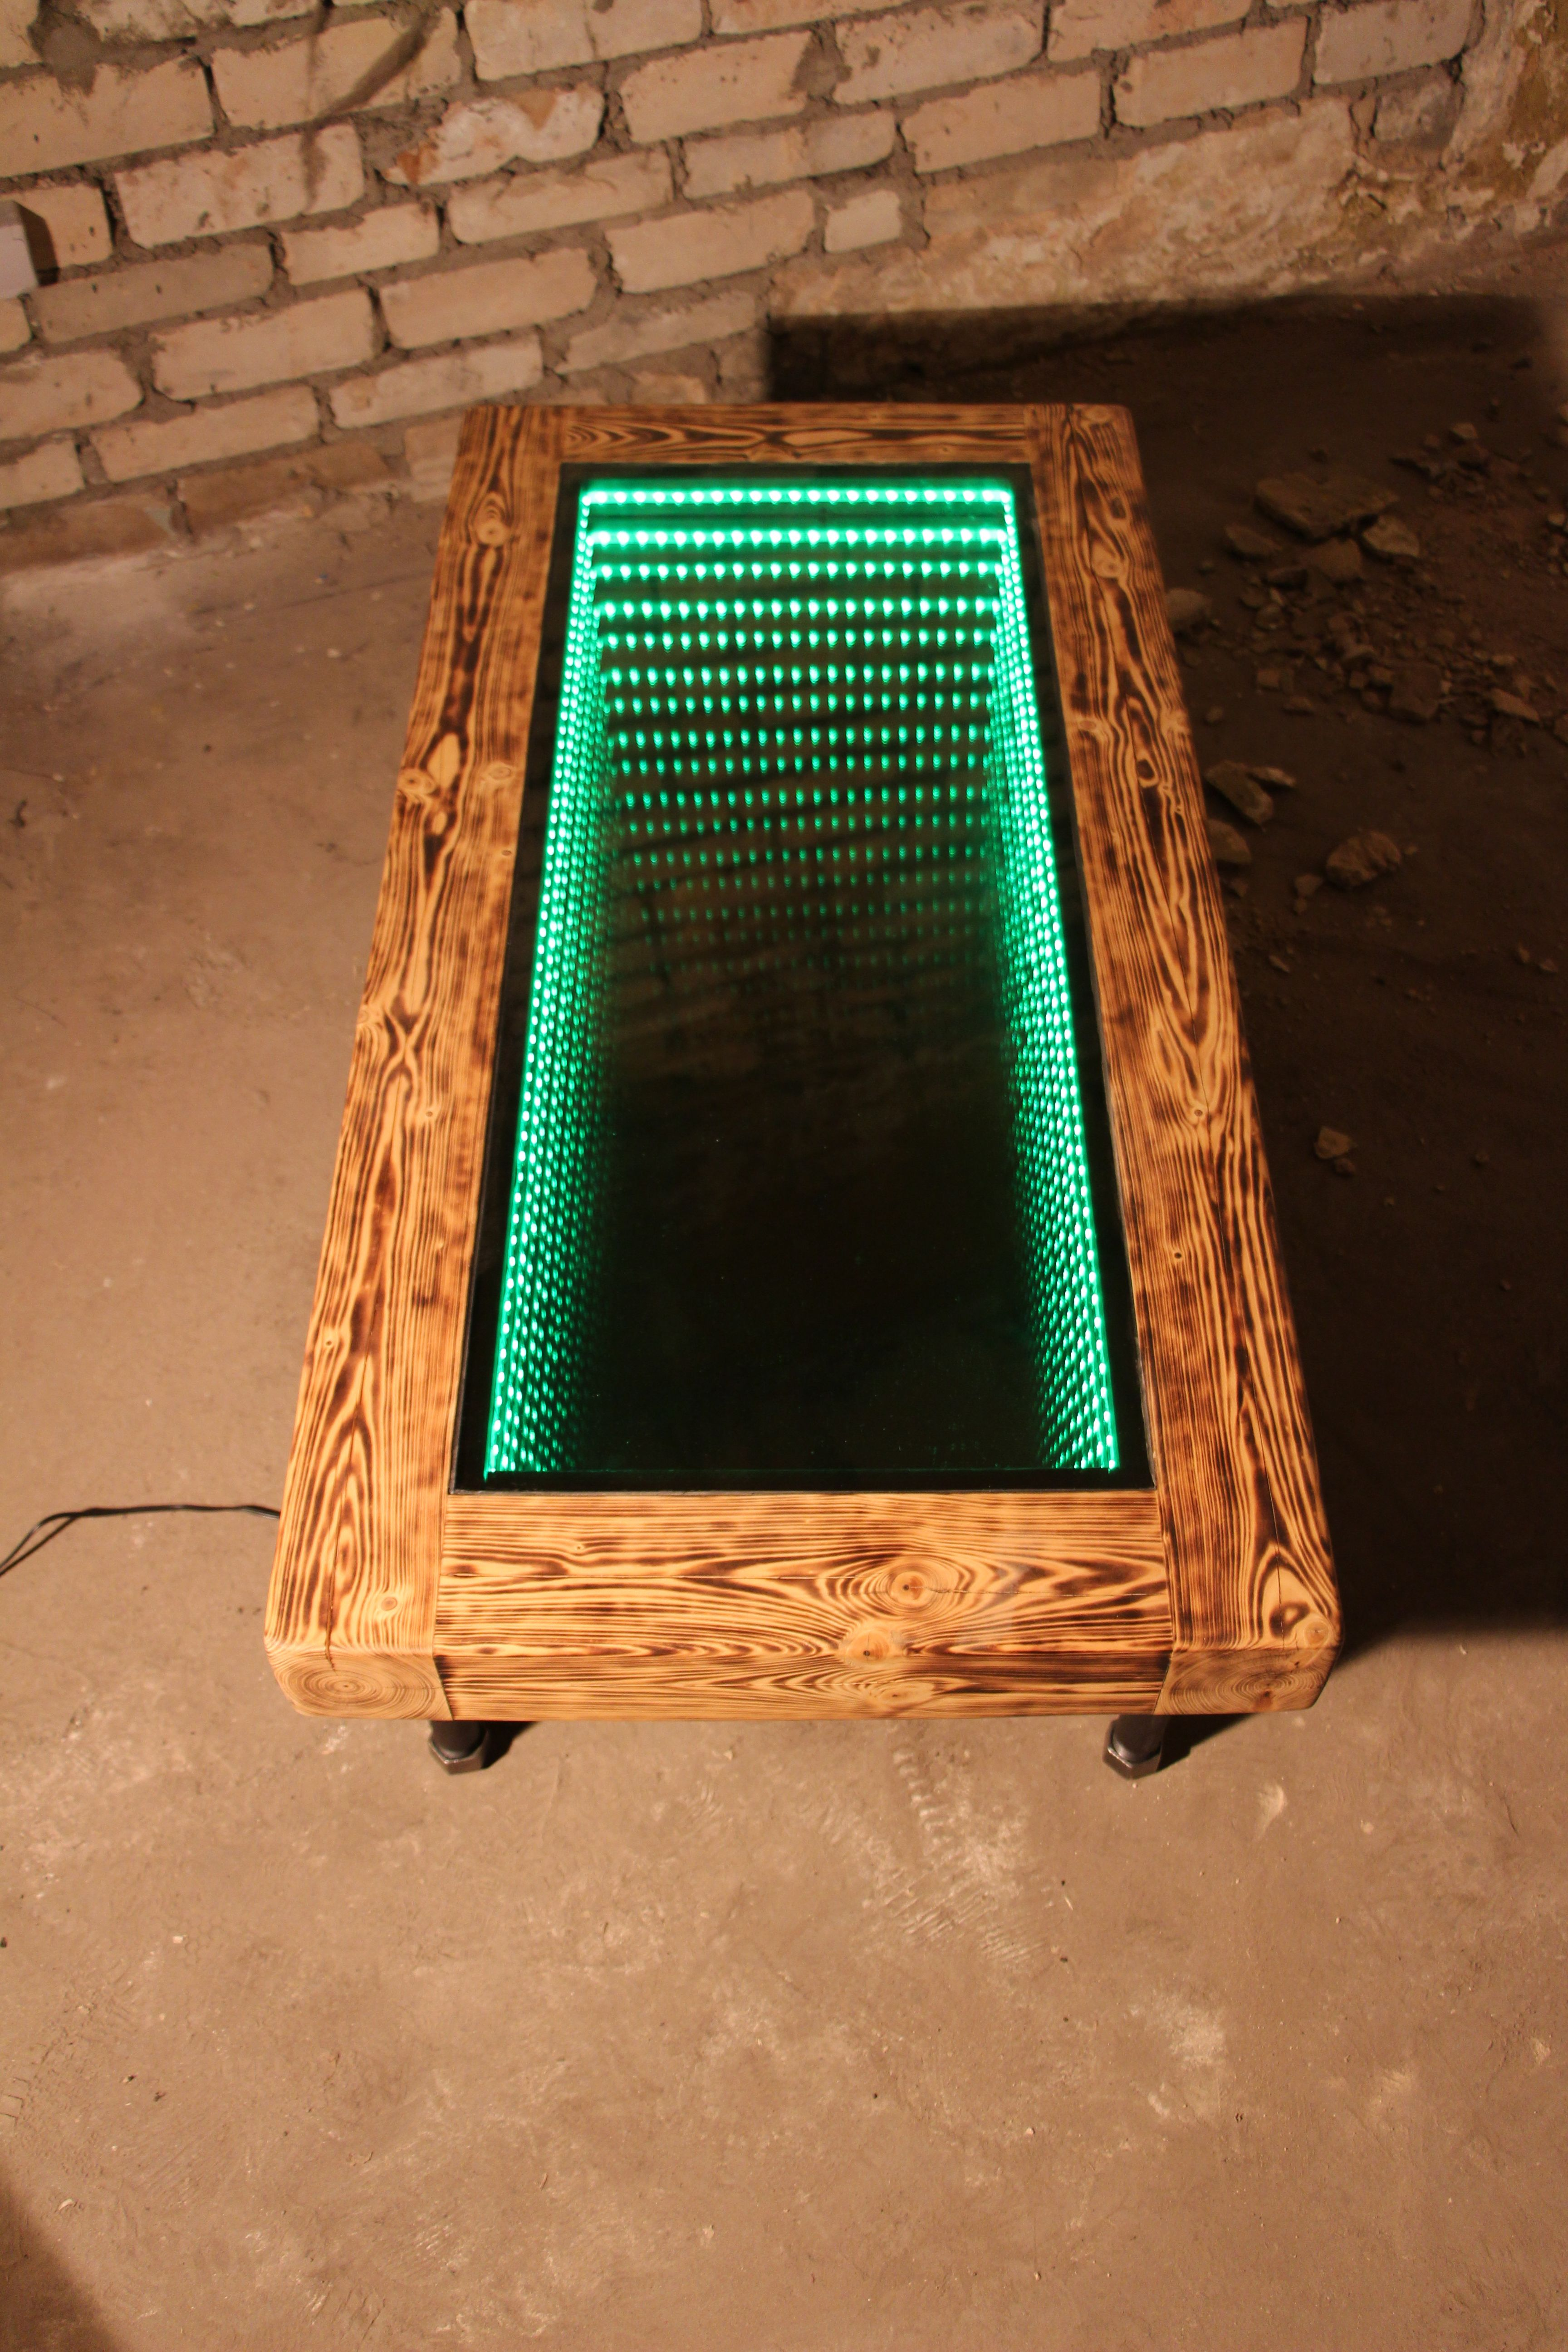 Diy Led Mirror Frame Burned Wood Infinity Table With Pipe Legs Table Design